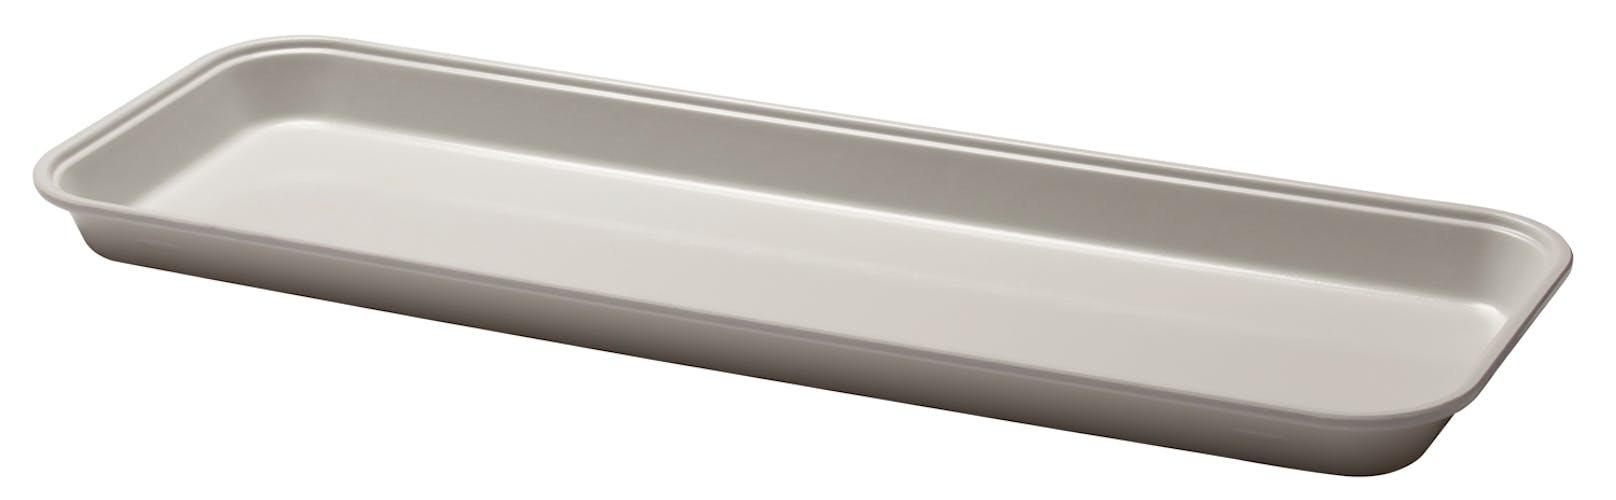 "8262MT148 Market Pan 8"" X 26"" X 2"" White"